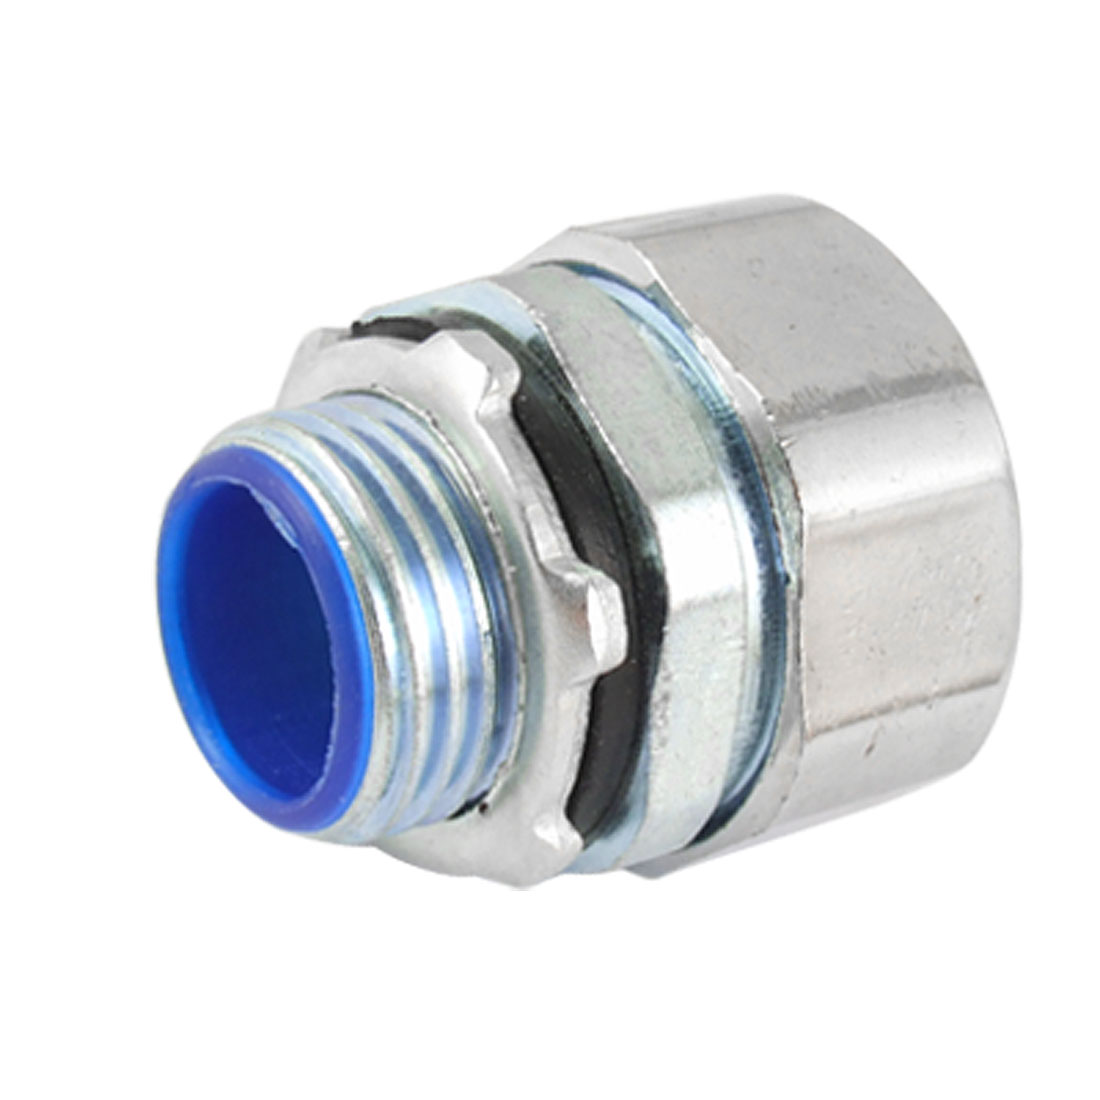 Unique Bargains 20mm Thread to 14mm Flexible Conduit Quick Coupling